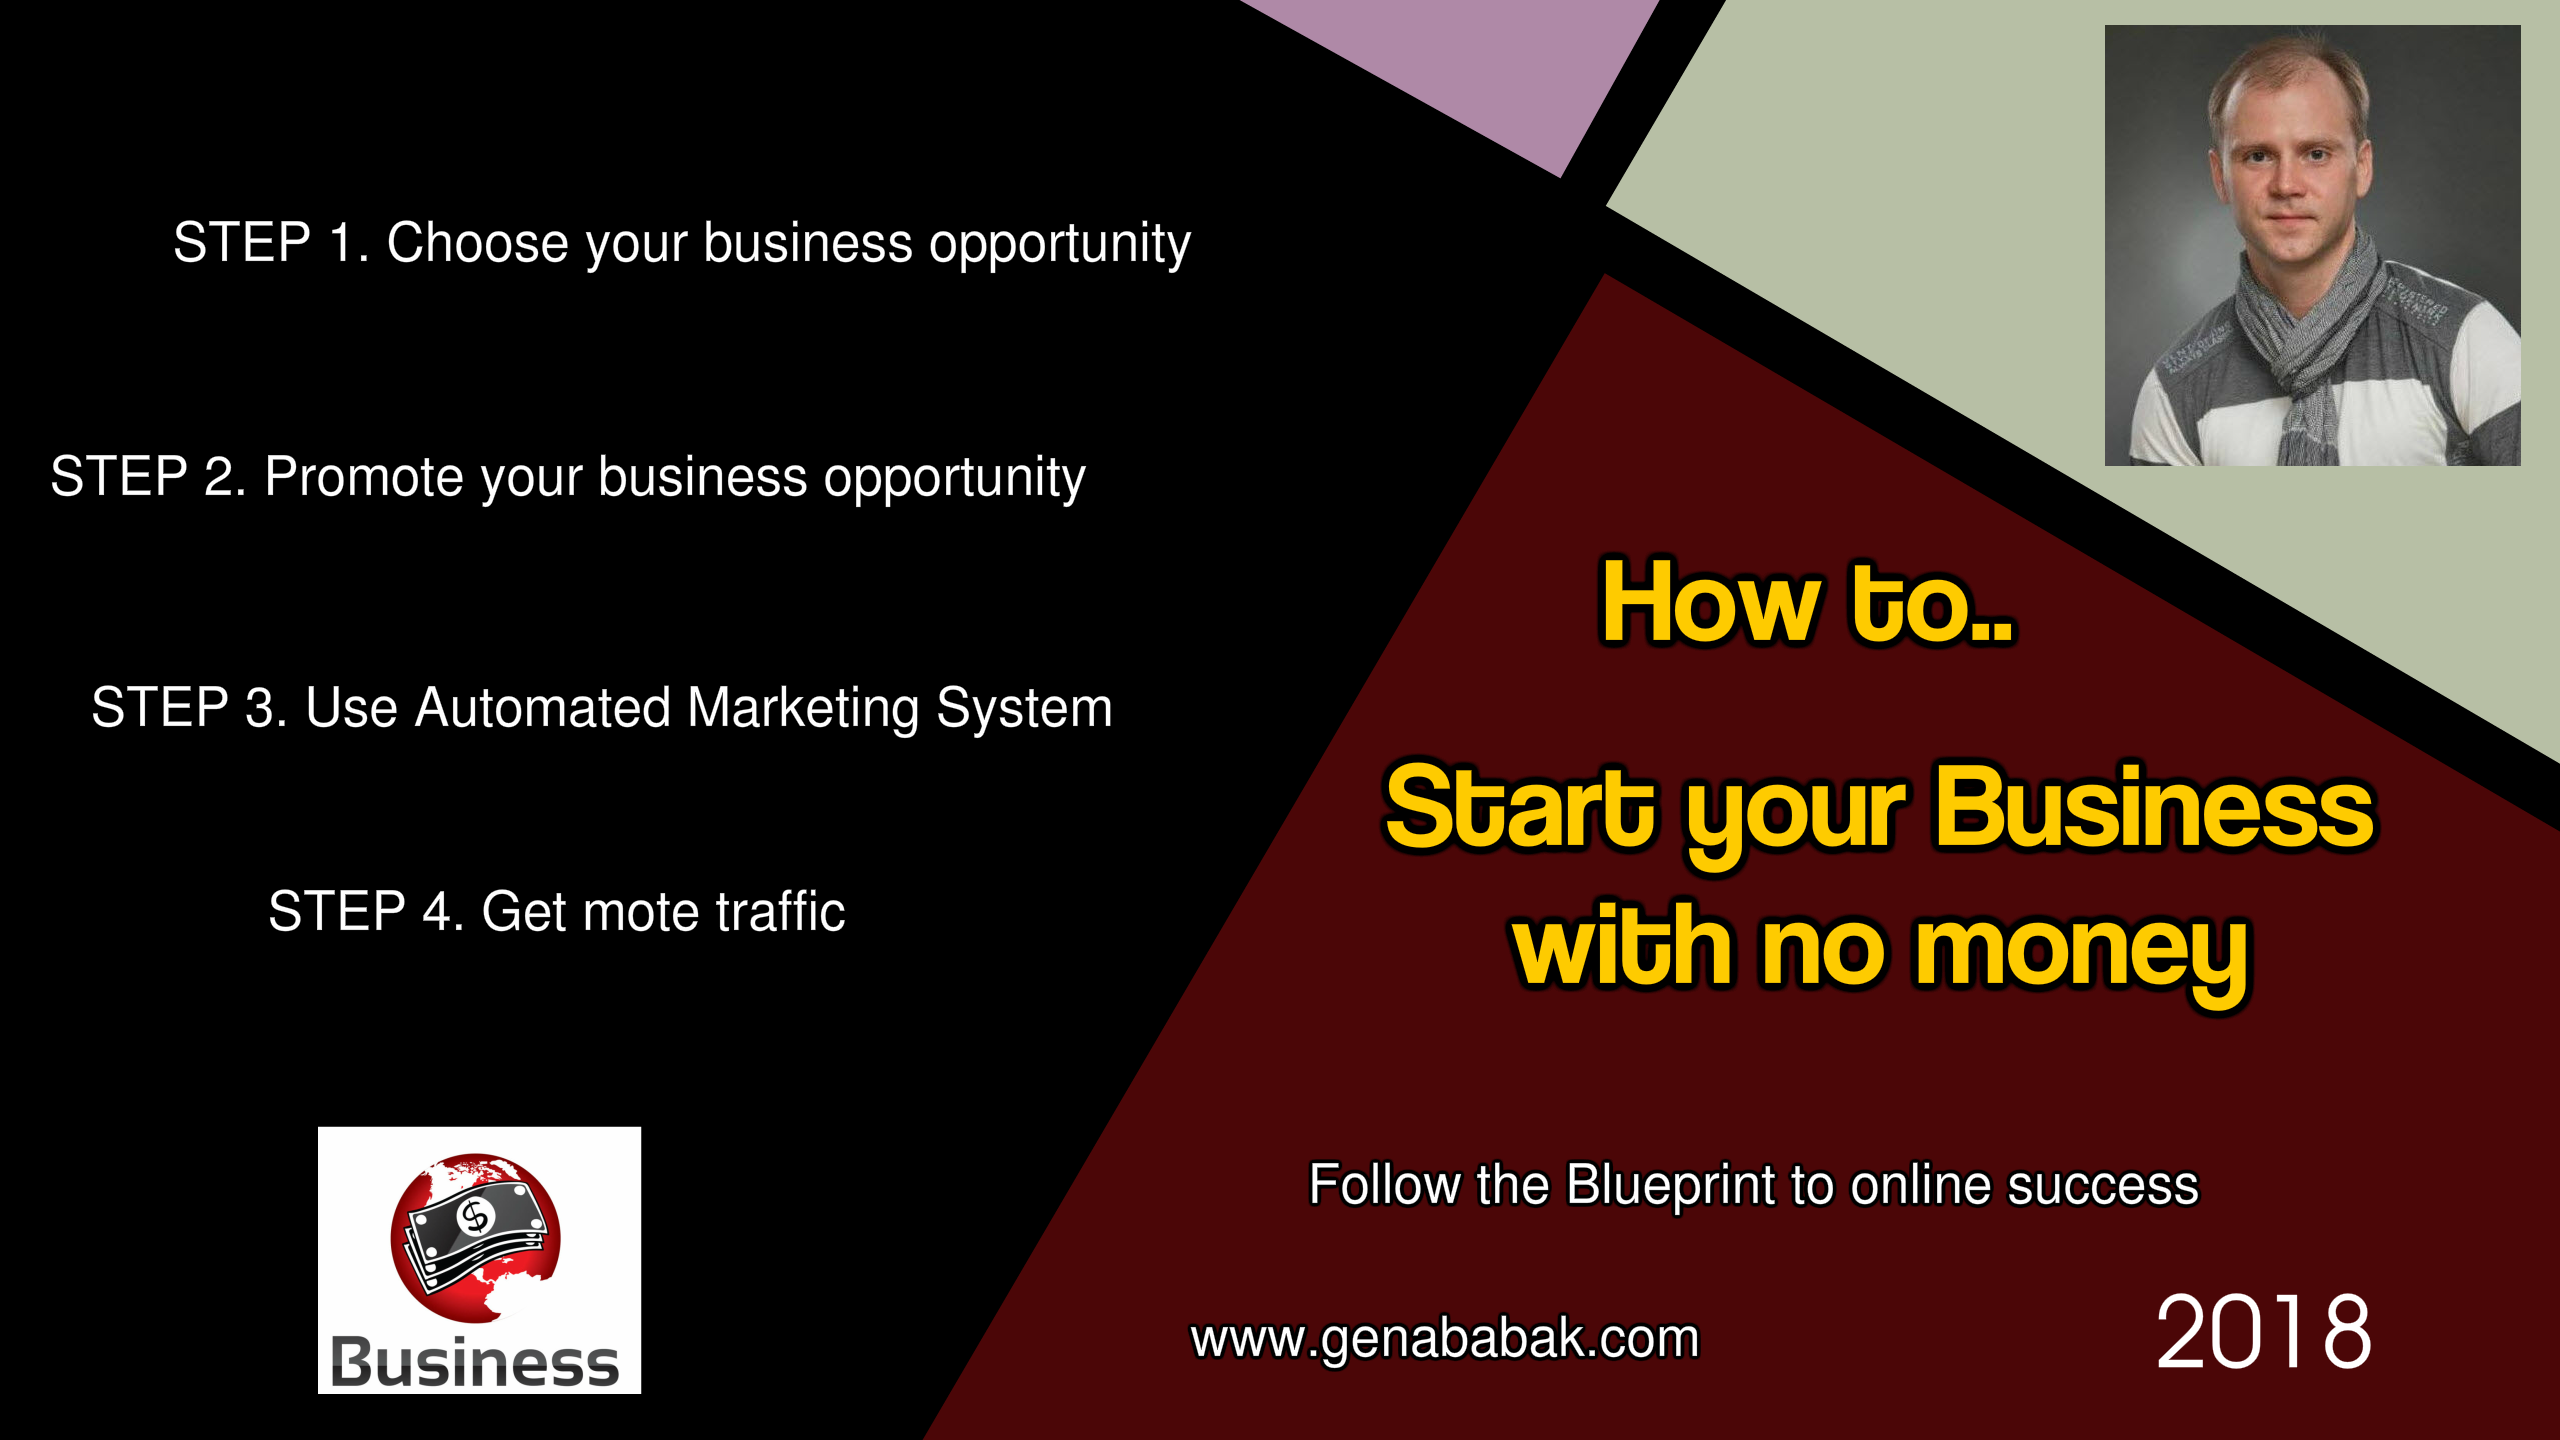 How to start your business with no money